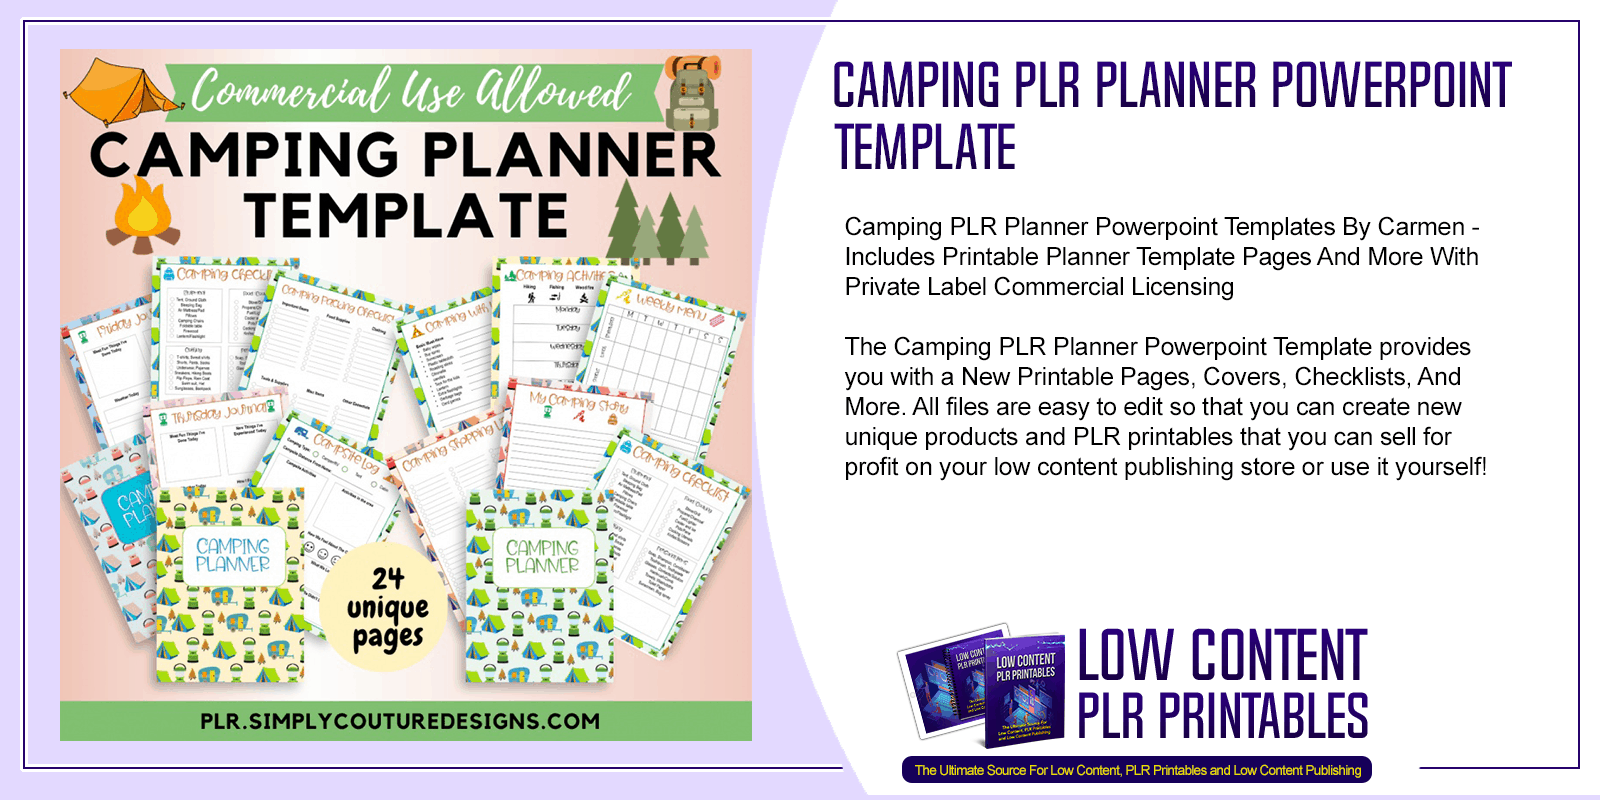 Camping PLR Planner Powerpoint Template